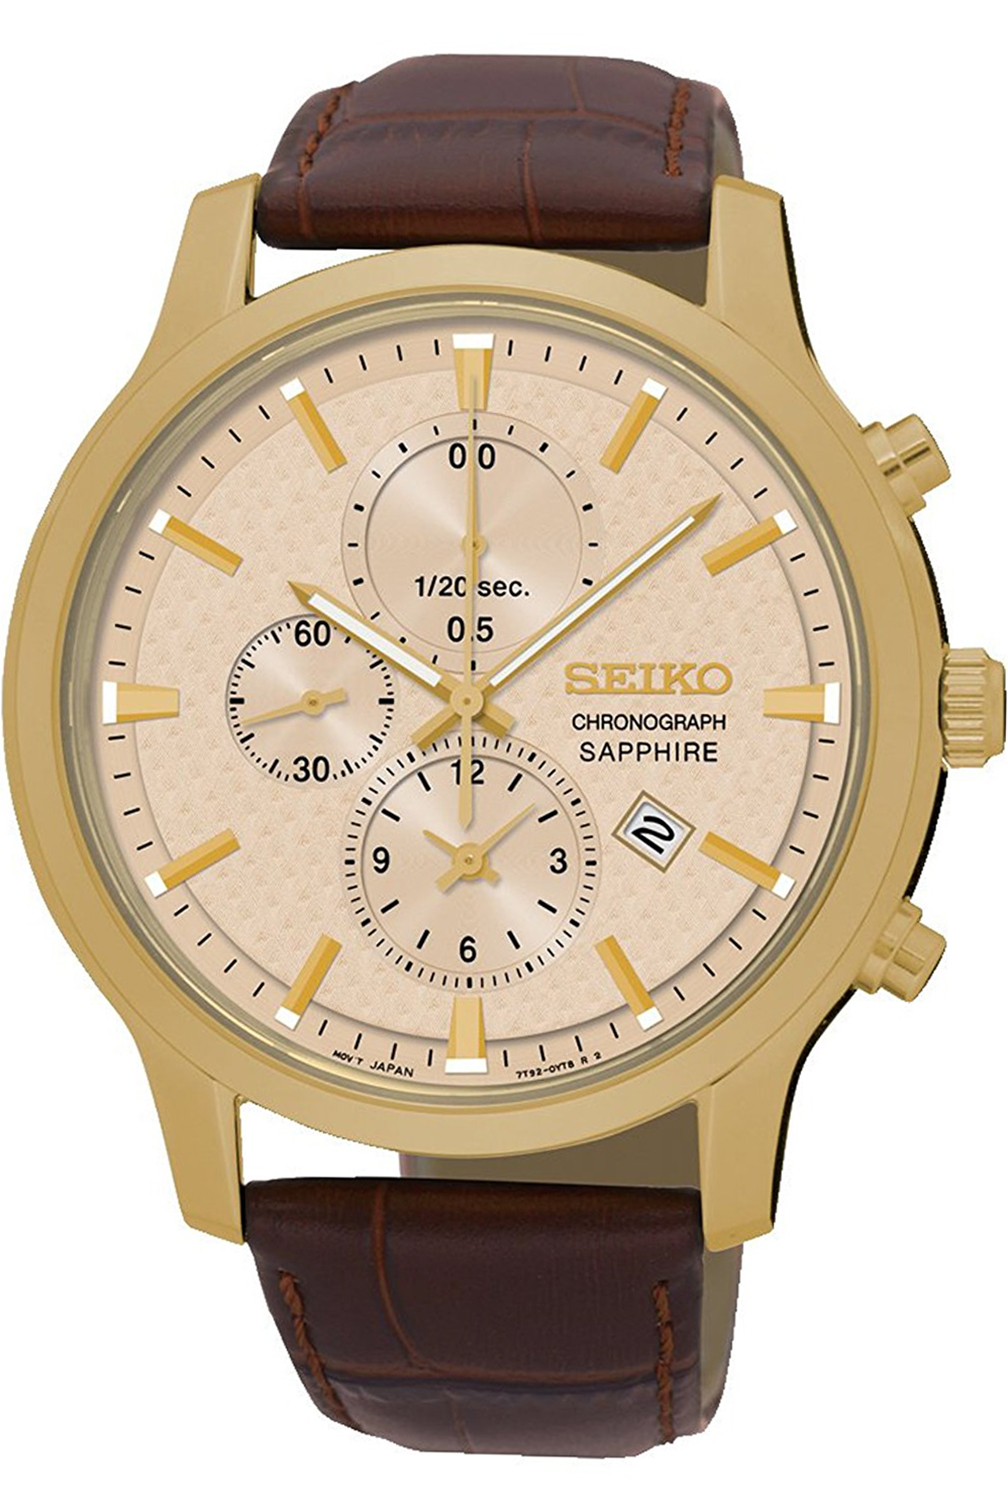 SEIKO SNDG70P1,Men's Chronograph,Stainless Steel Case,Clear Dial,Brown Leather,Sapphire Cystal,100m WR,SNDG70